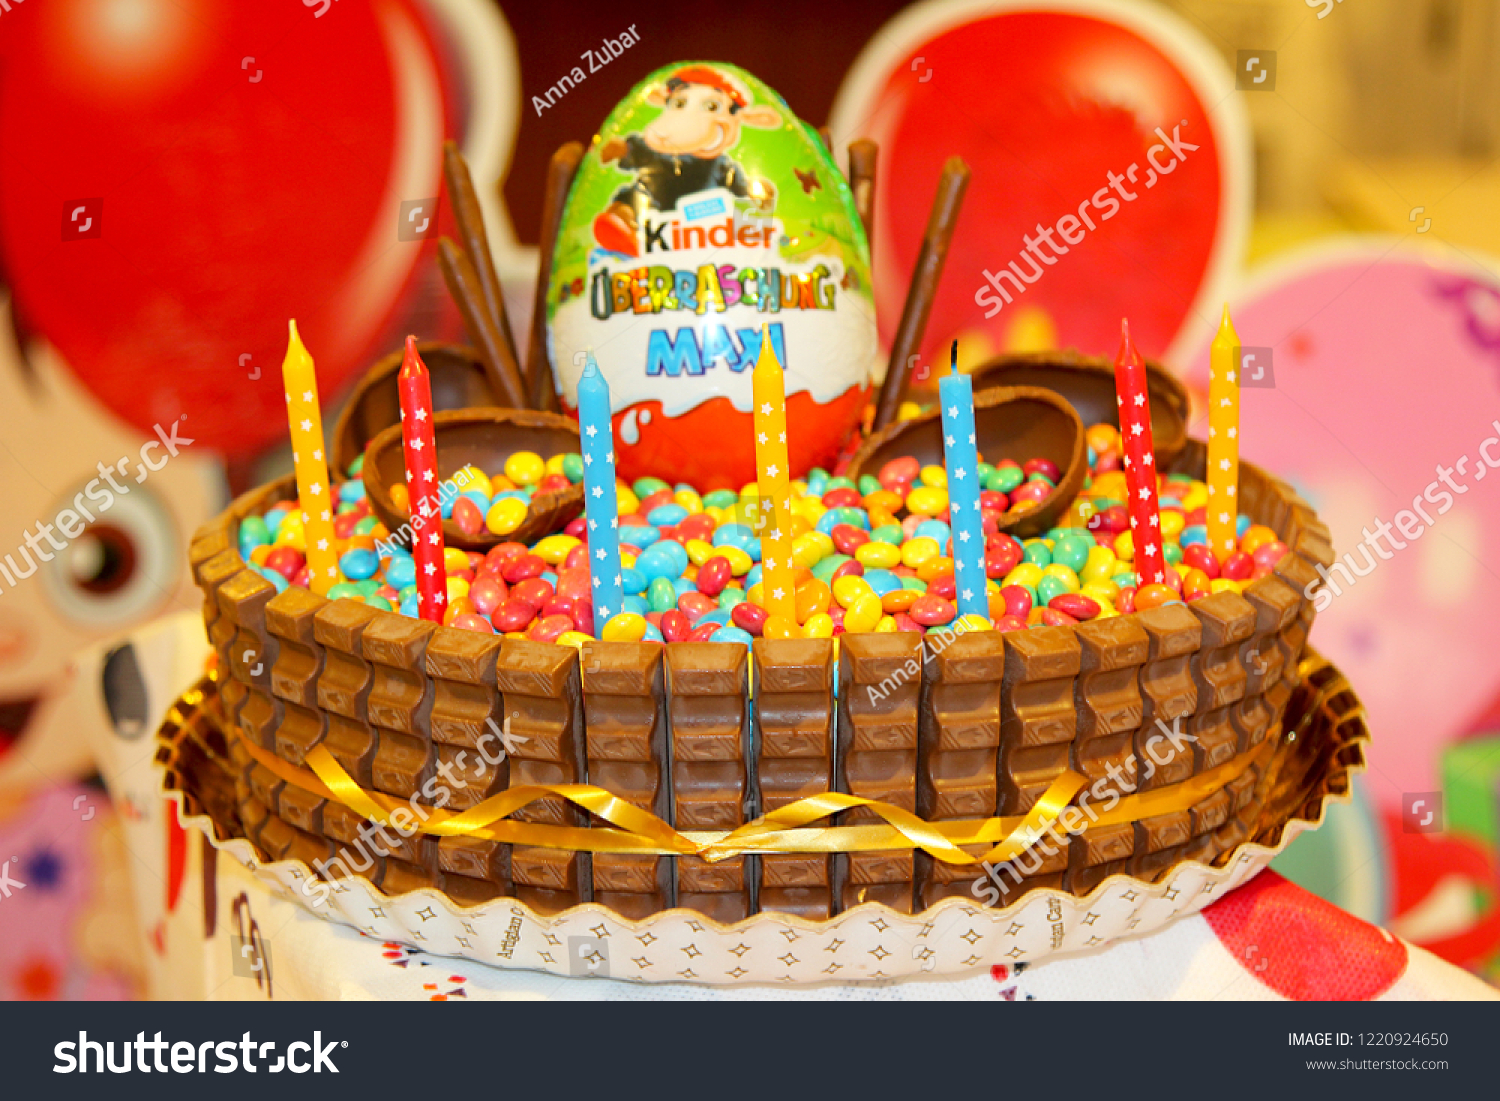 Kinderessen Party Cake Kinder Surprise Cake Sweets June Stock Photo Edit Now